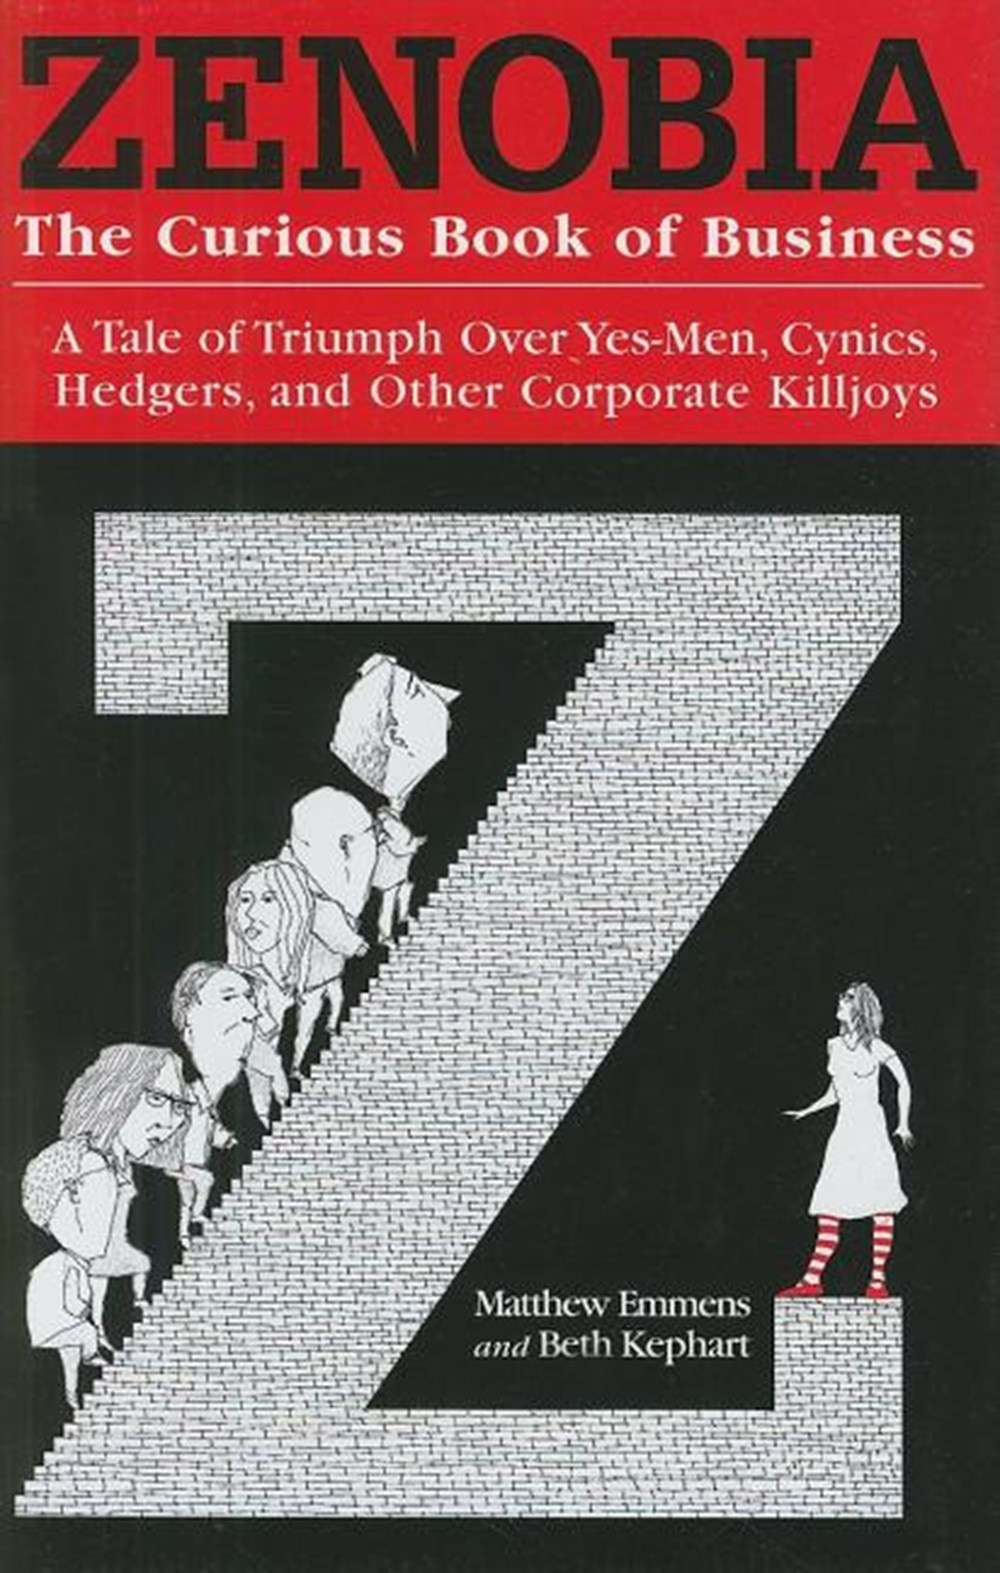 Zenobia The Curious Book of Business: A Tale of Triumph Over Yes-Men, Cynics, Hedgers, and Other Cor